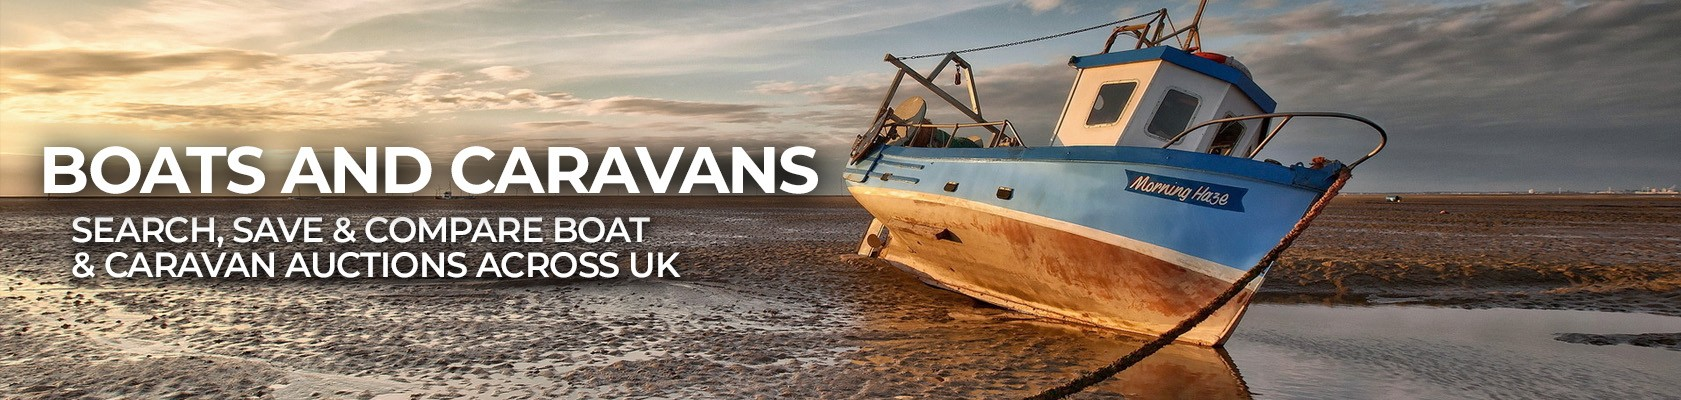 boat and caravan auctions